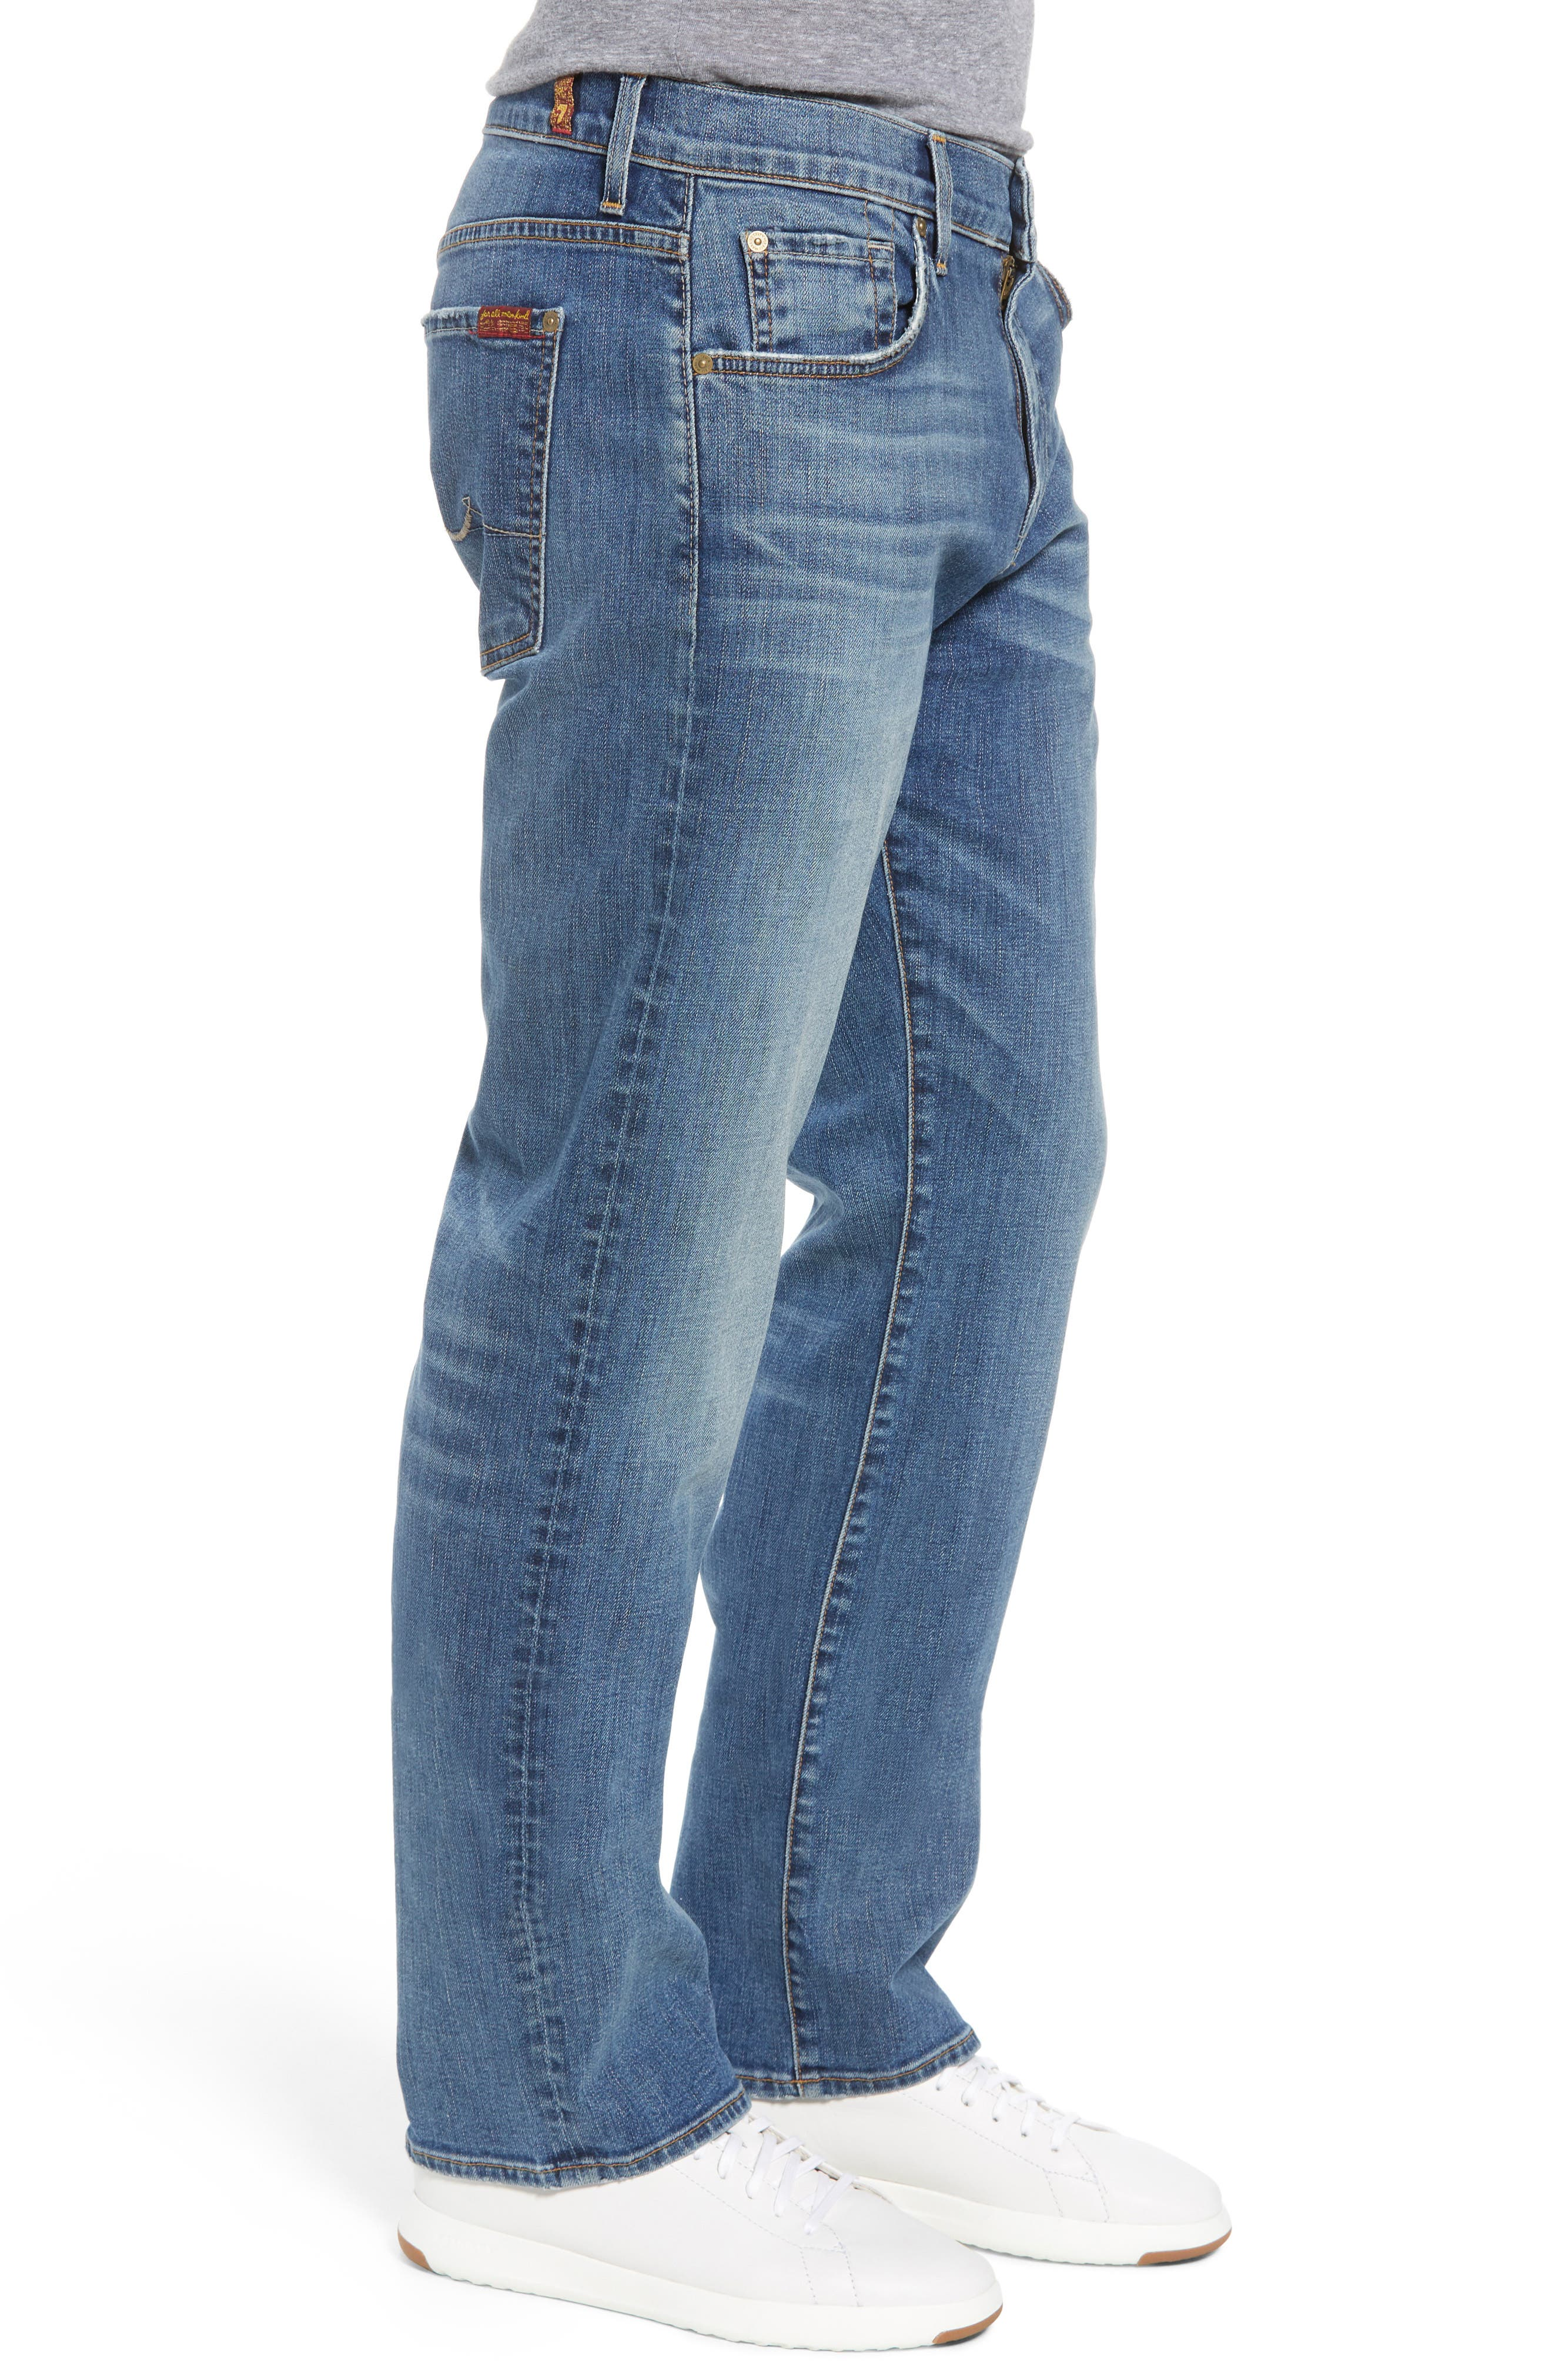 Luxe Performance - Austyn Relaxed Fit Jeans,                             Alternate thumbnail 3, color,                             Bedrock